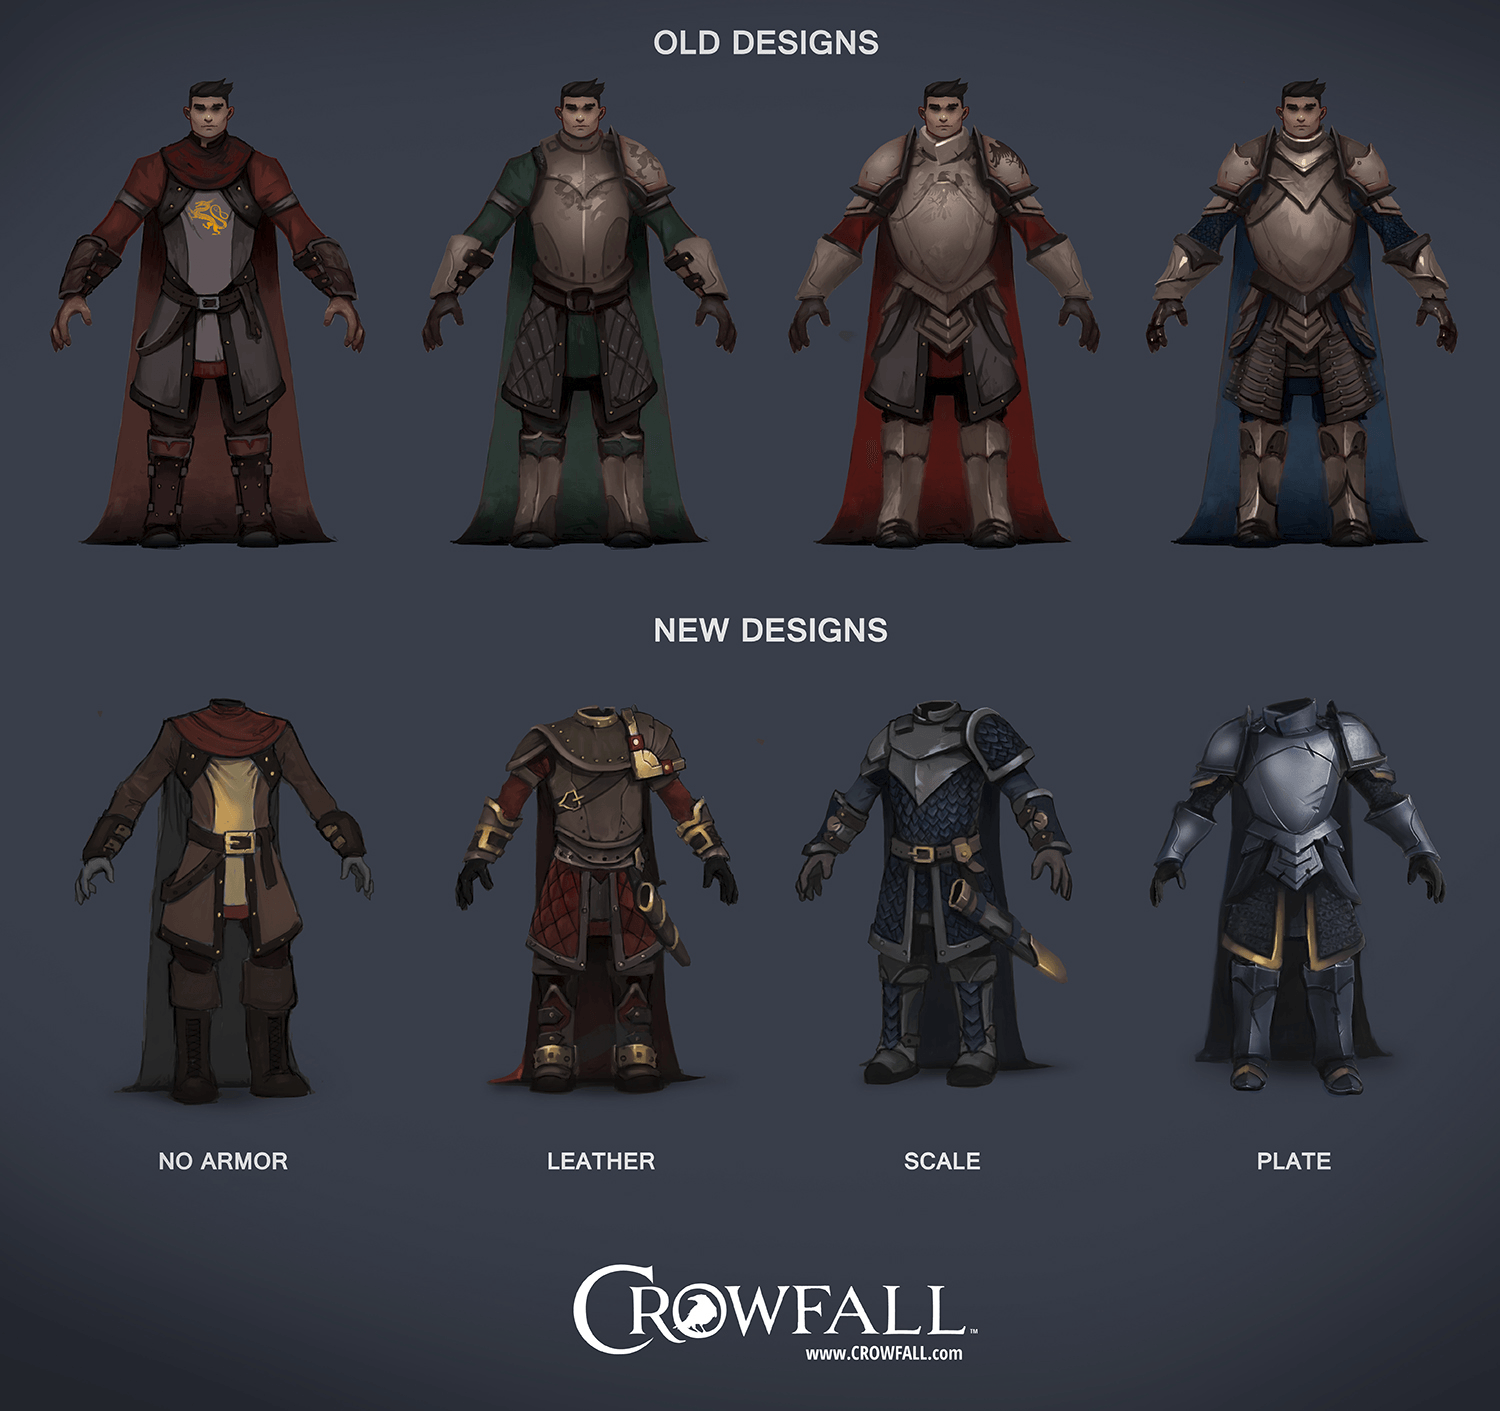 Crowfall Discusses Changes to Armor System news header